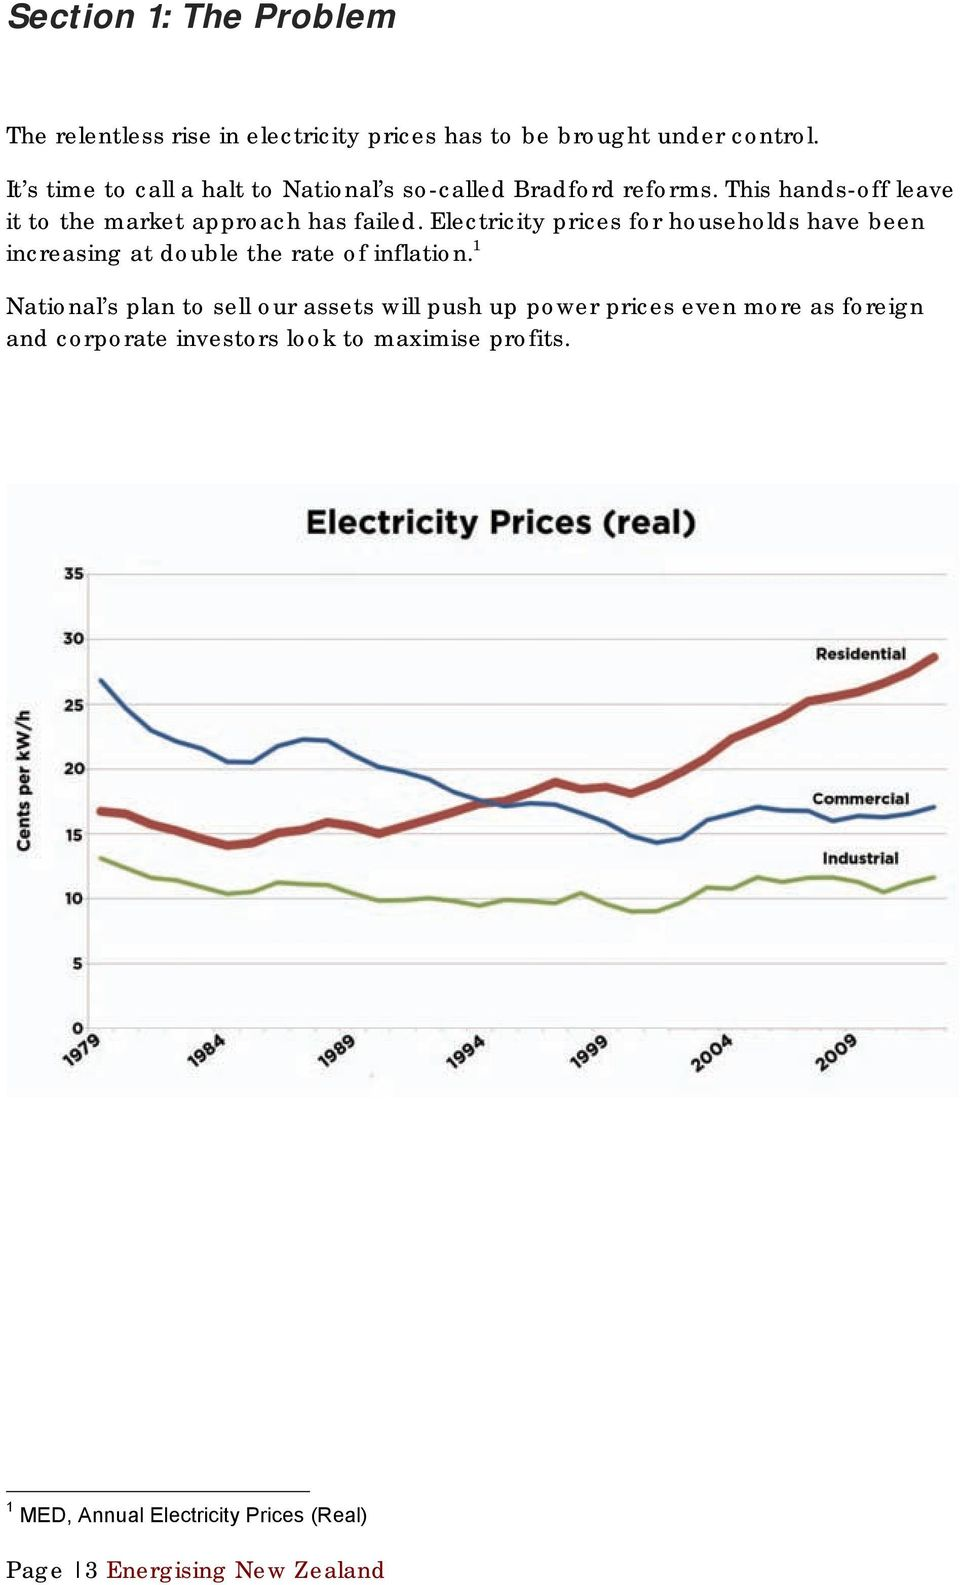 Electricity prices for households have been increasing at double the rate of inflation.